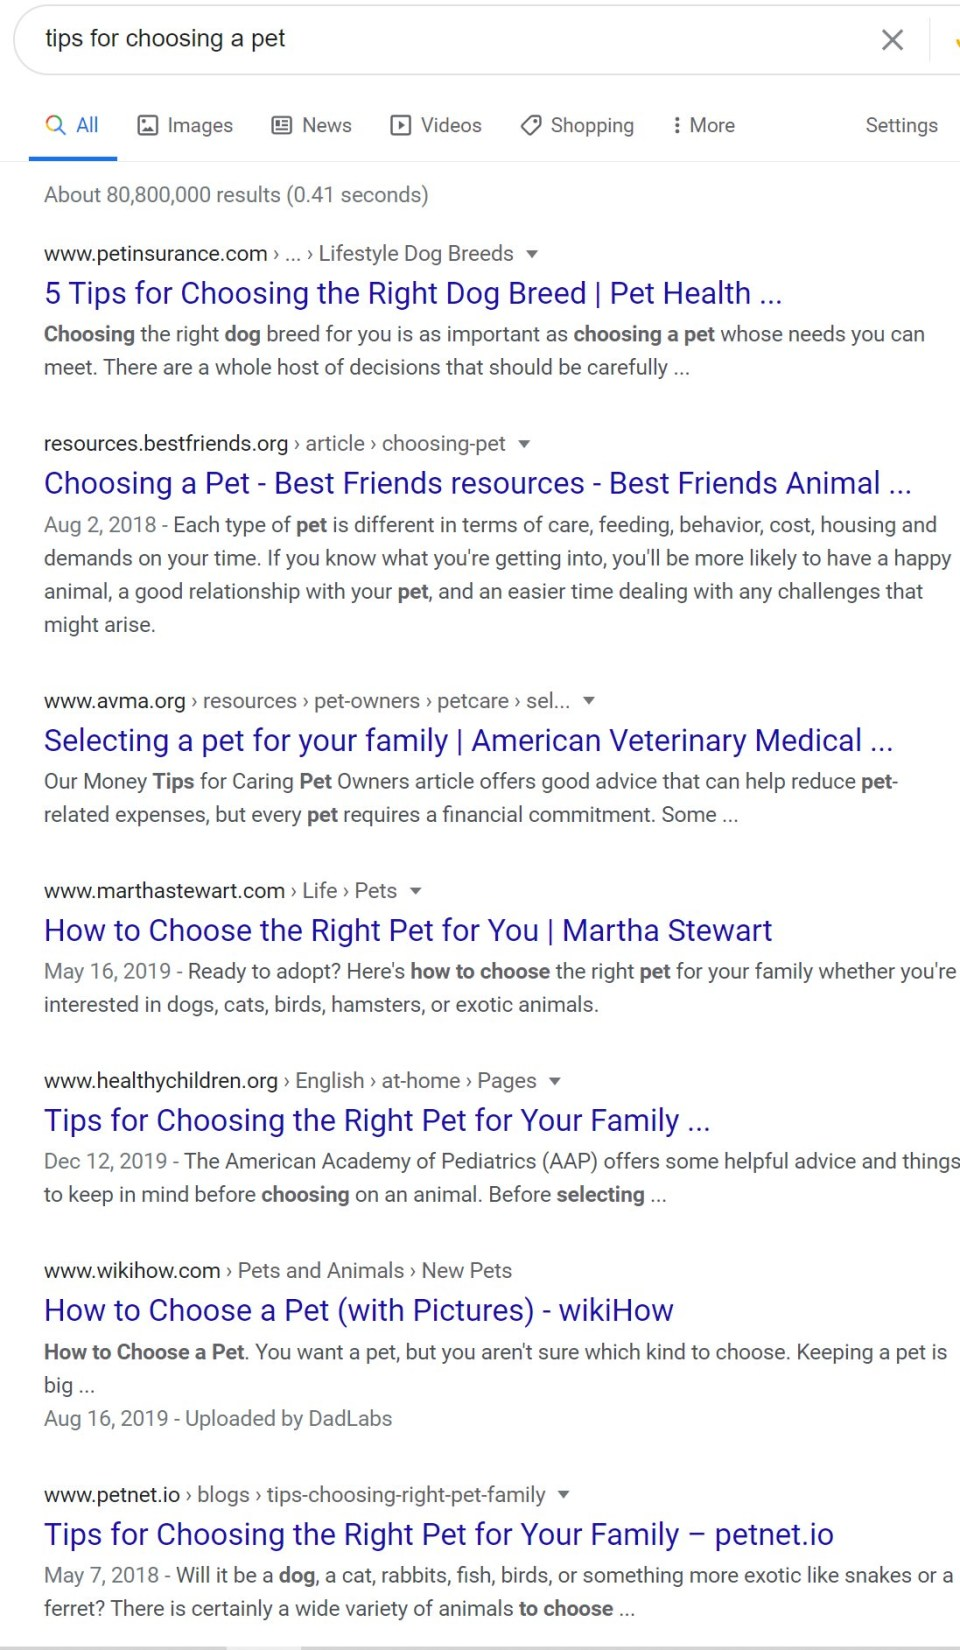 screenshot - SERP results showing example of titles showing up first, as Google makes sense of the content and rank it accordingly.